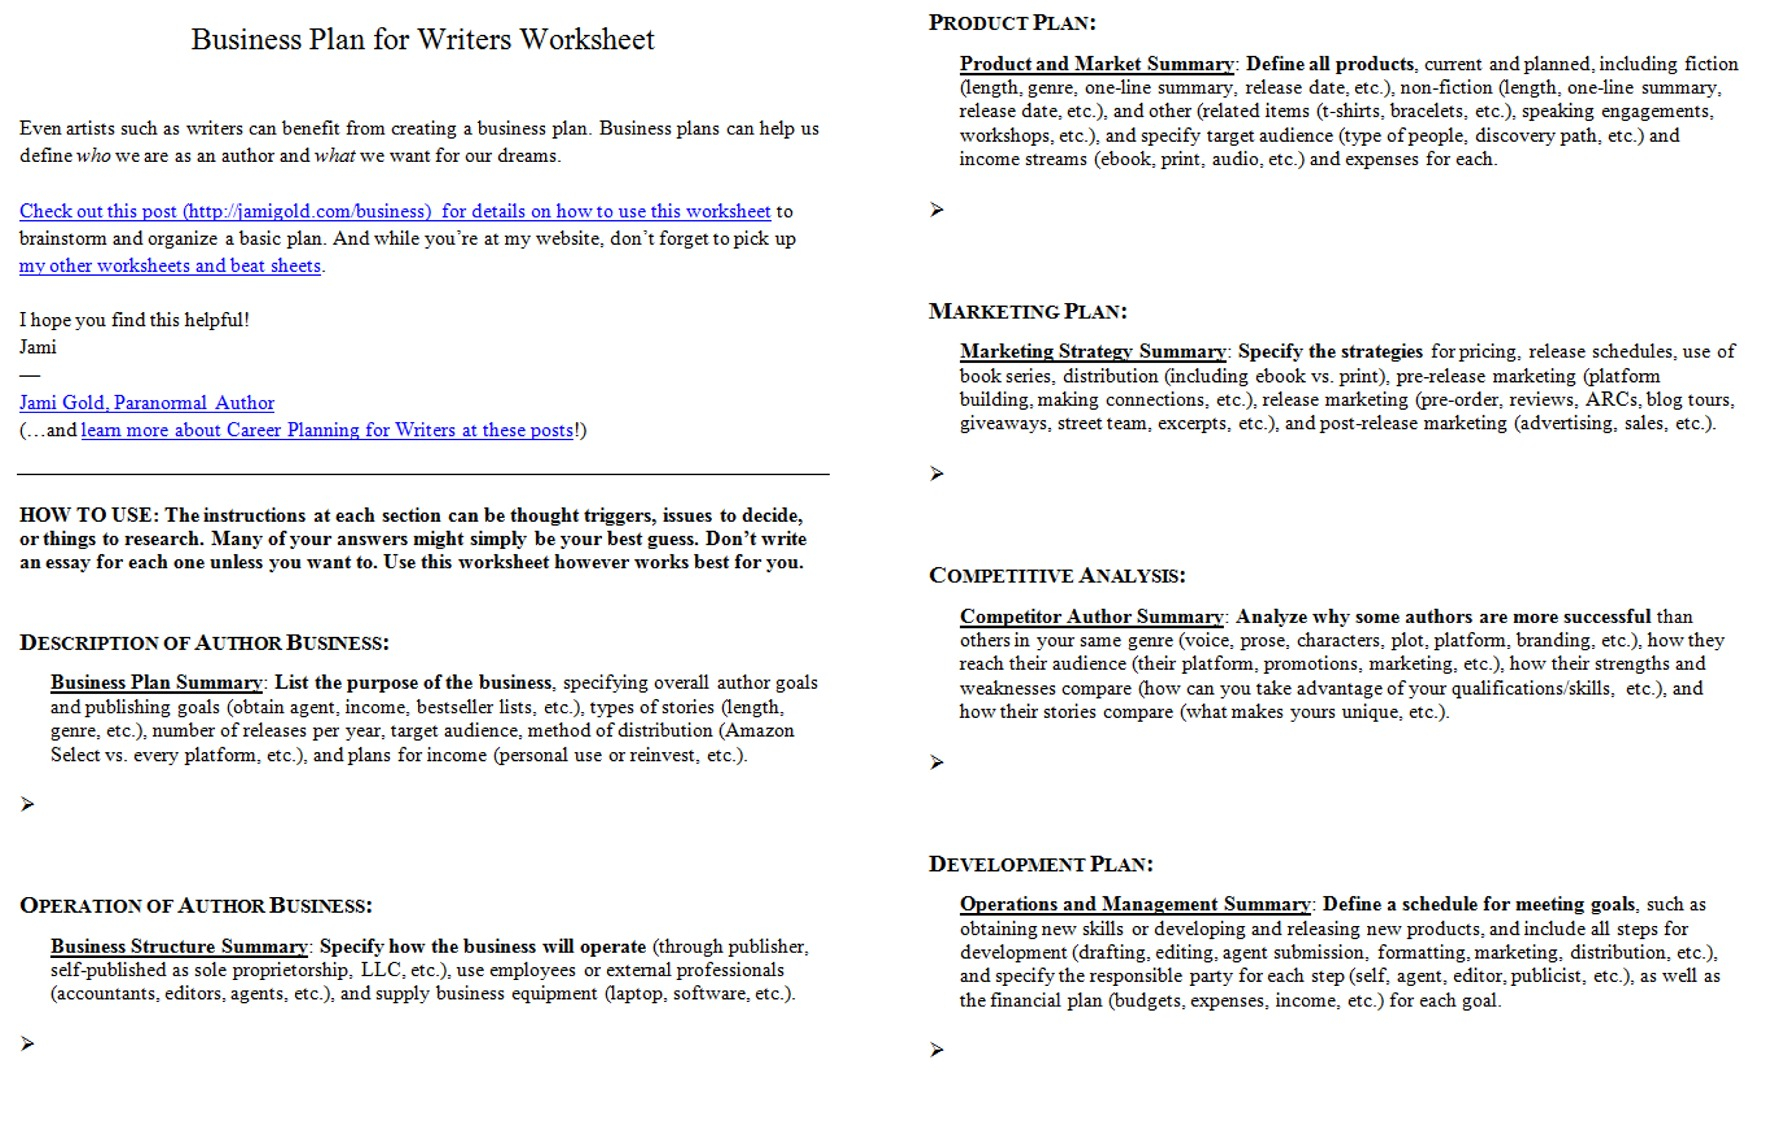 Proatmealus  Mesmerizing Worksheets For Writers  Jami Gold Paranormal Author With Lovable Screen Shot Of Both Pages Of The Business Plan For Writers Worksheet With Delightful Grade  Math Review Worksheets Also  Grade Multiplication Worksheets In Addition Adjectives Worksheets Ks And Multiplication Easy Worksheets As Well As Worksheet For Nursery Additionally Estimating Worksheets Th Grade From Jamigoldcom With Proatmealus  Lovable Worksheets For Writers  Jami Gold Paranormal Author With Delightful Screen Shot Of Both Pages Of The Business Plan For Writers Worksheet And Mesmerizing Grade  Math Review Worksheets Also  Grade Multiplication Worksheets In Addition Adjectives Worksheets Ks From Jamigoldcom